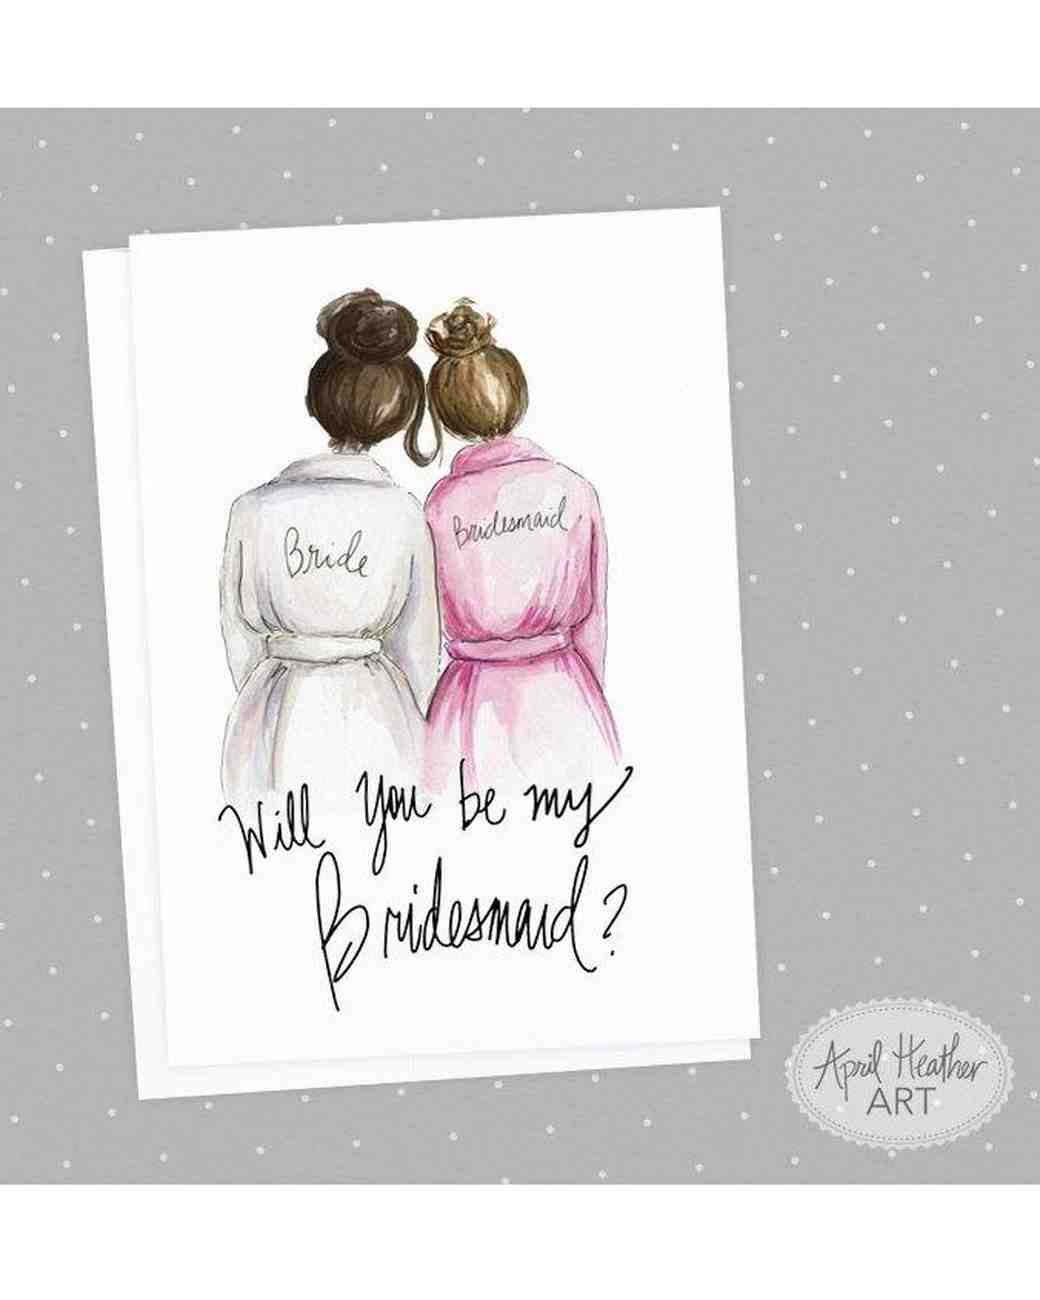 april-heather-art-will-you-be-my-bridesmaid-card-0216.jpg